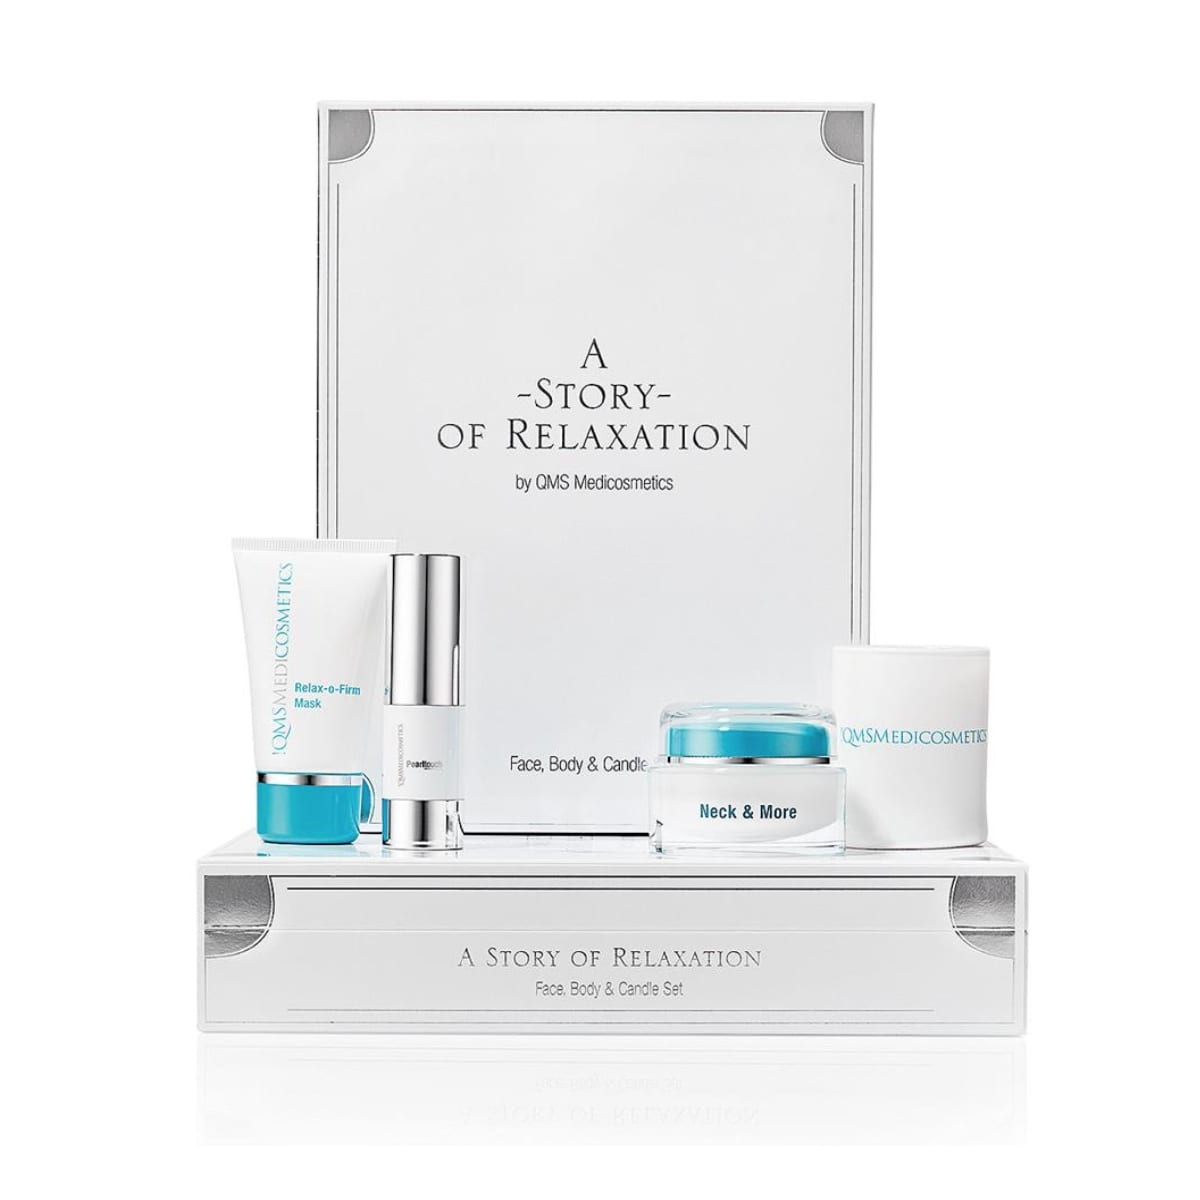 QMS Weihnachtsgeschenk - A Story of Relaxation Set